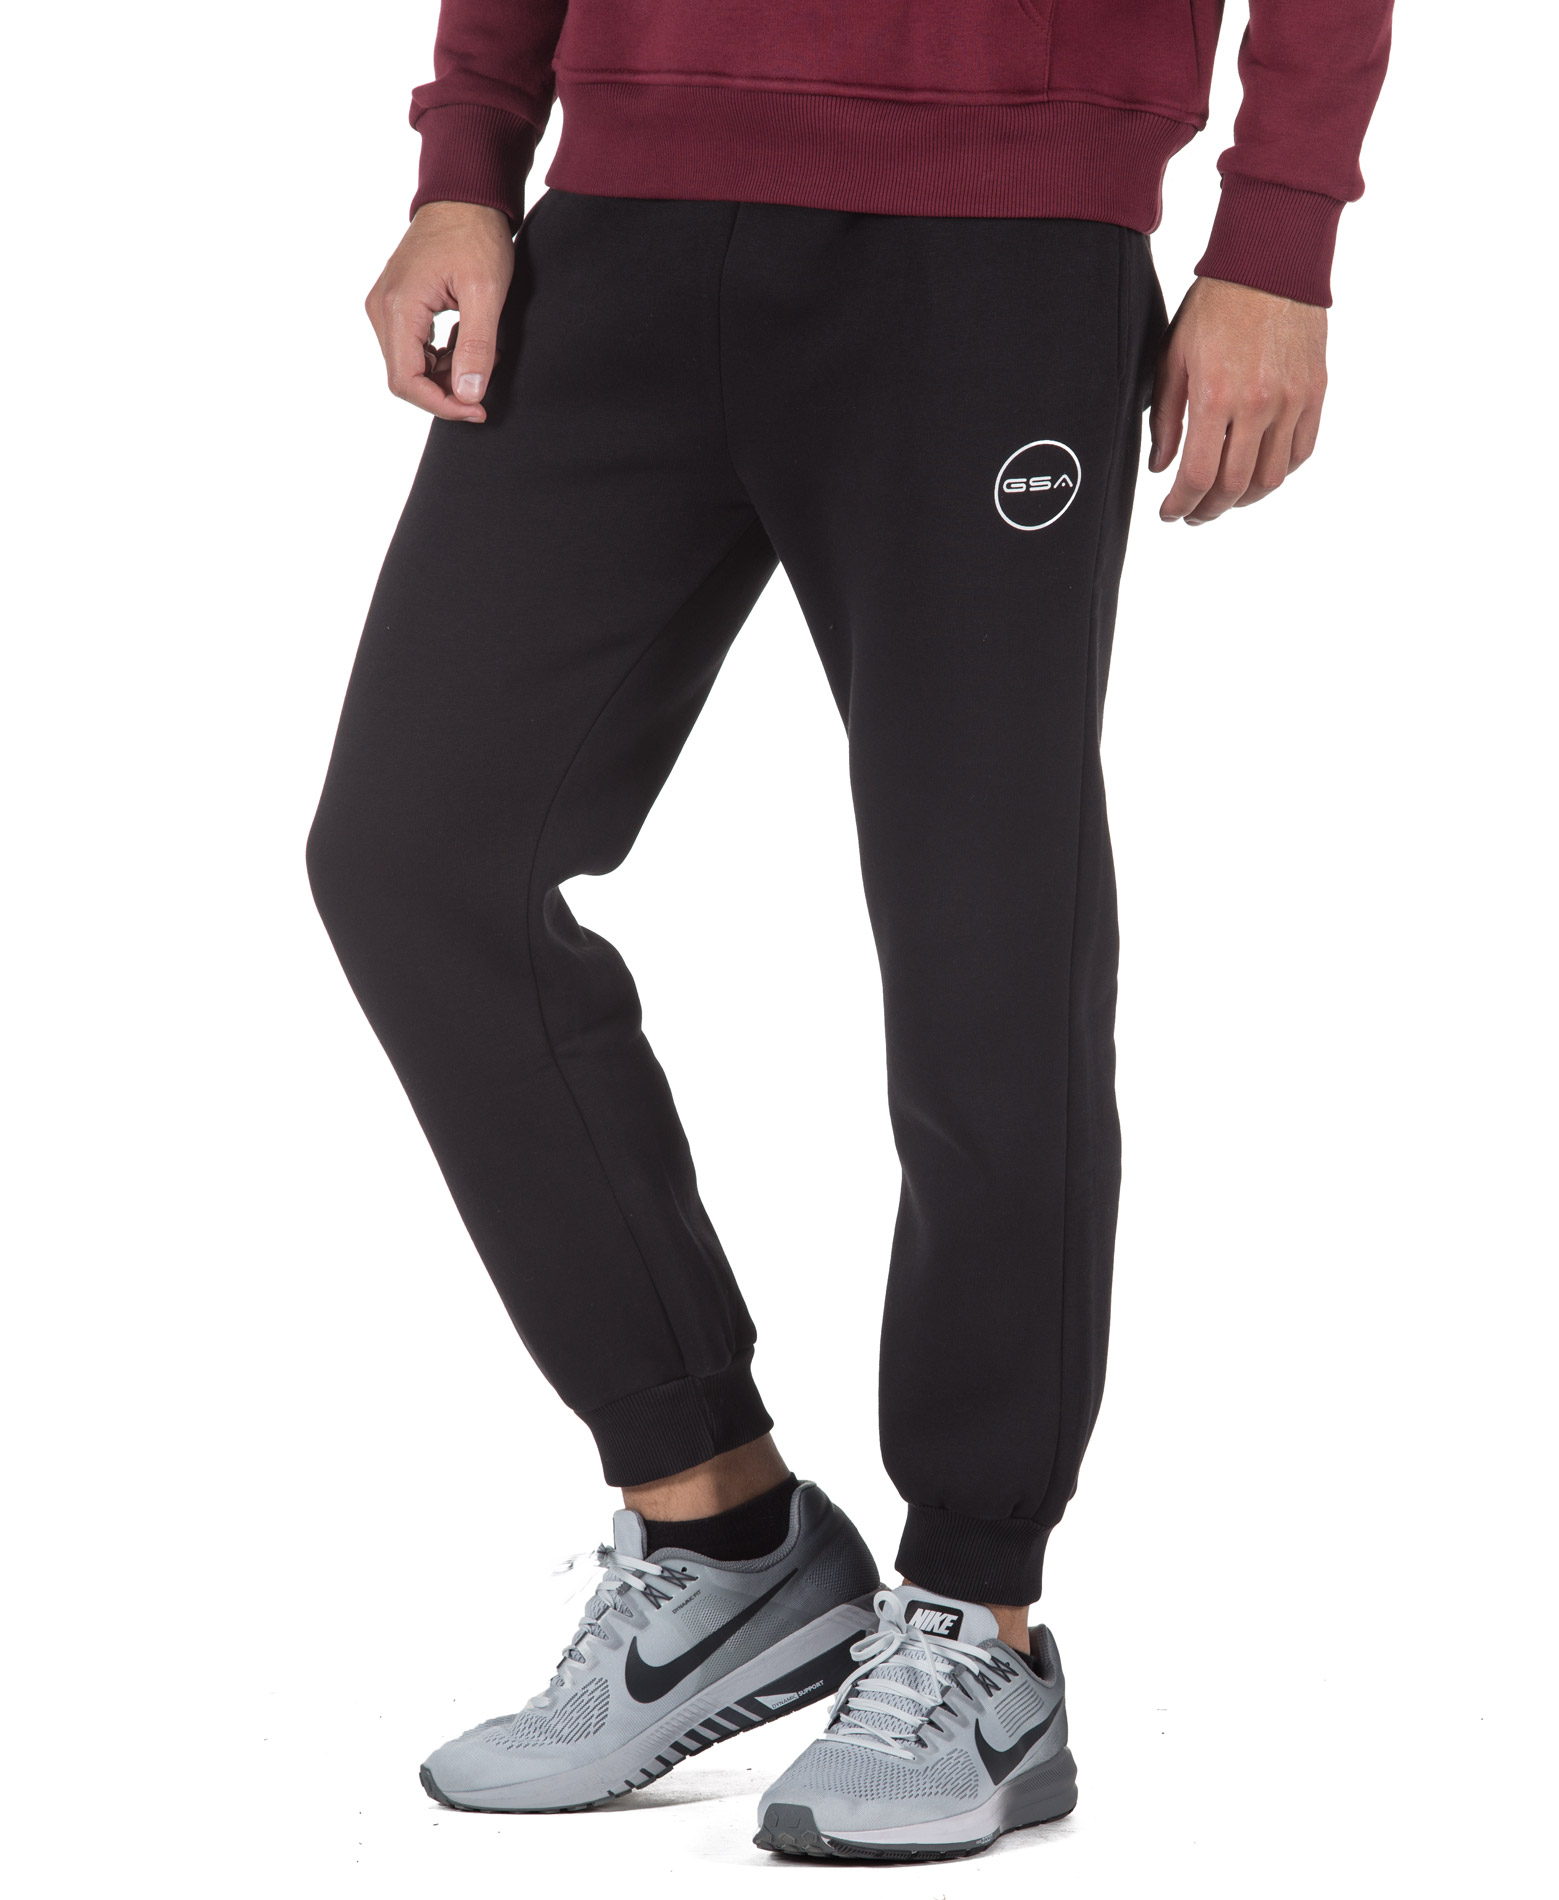 GSA SUPERCOTTON JOGGERS SWEATPANTS 17-17027-01 JET BLACK Μαύρο